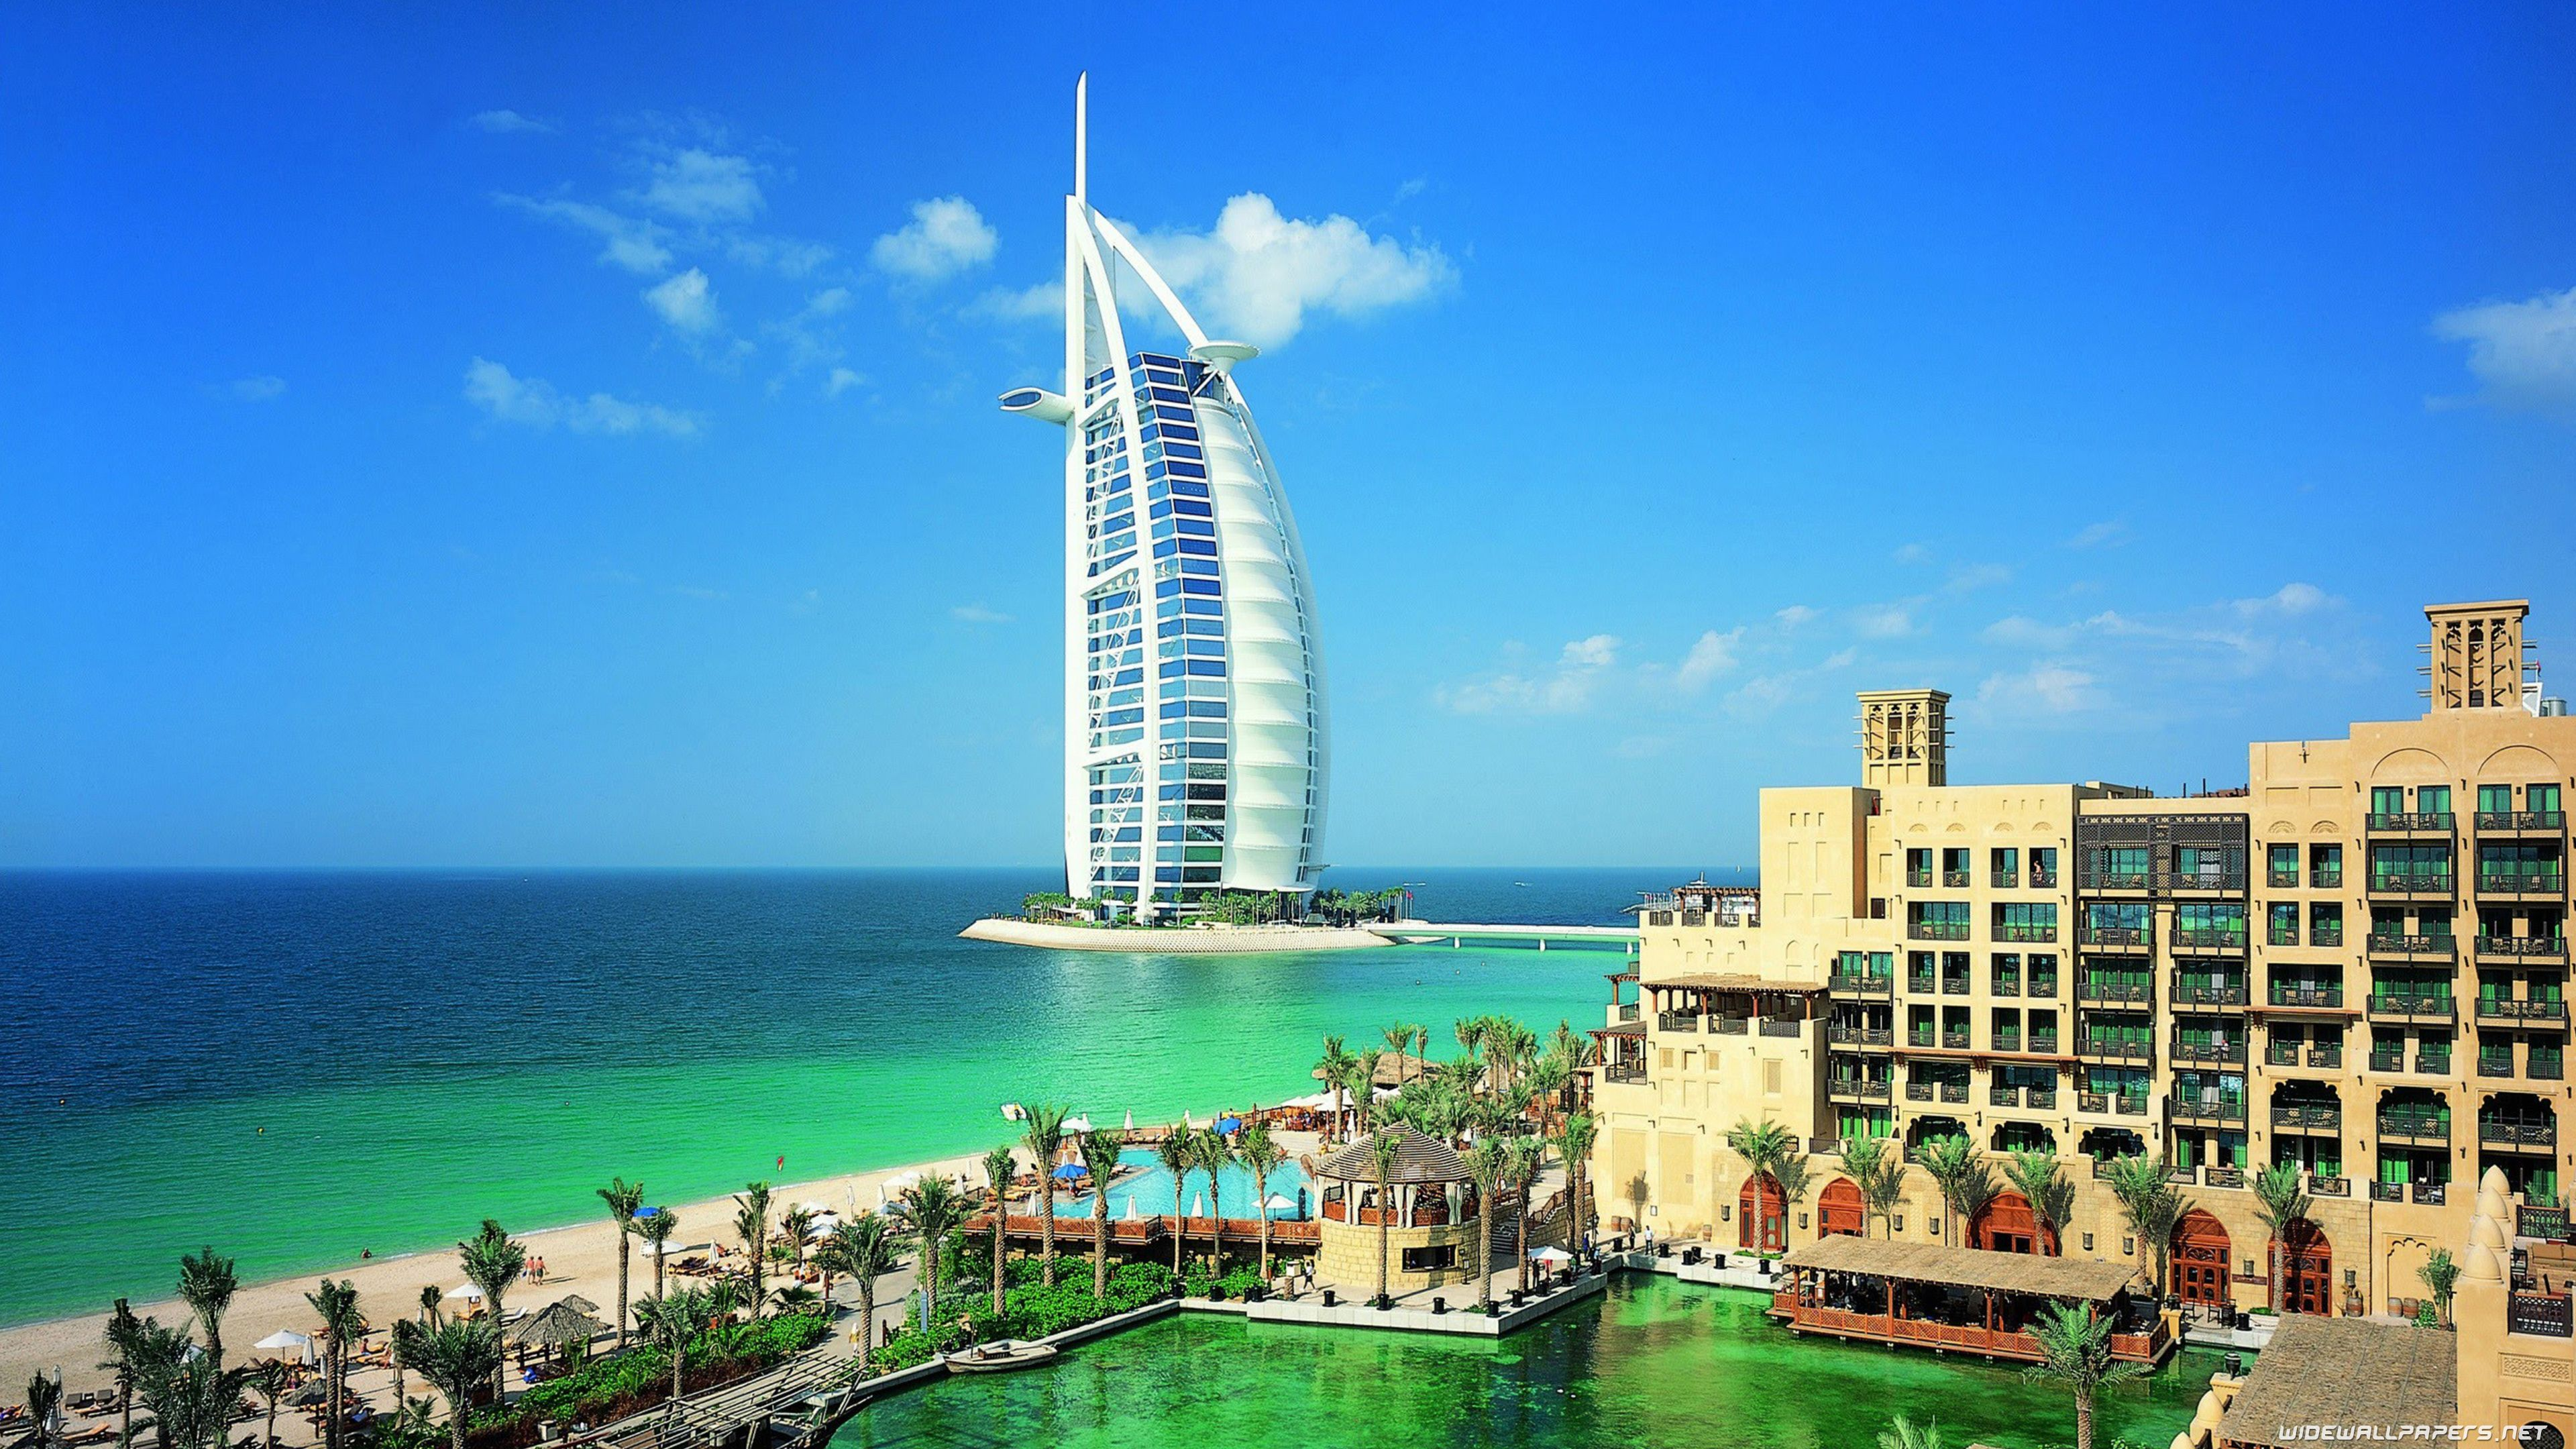 Dubai 4k Wallpapers 1080p Dubai Travel Dubai Holidays Dubai